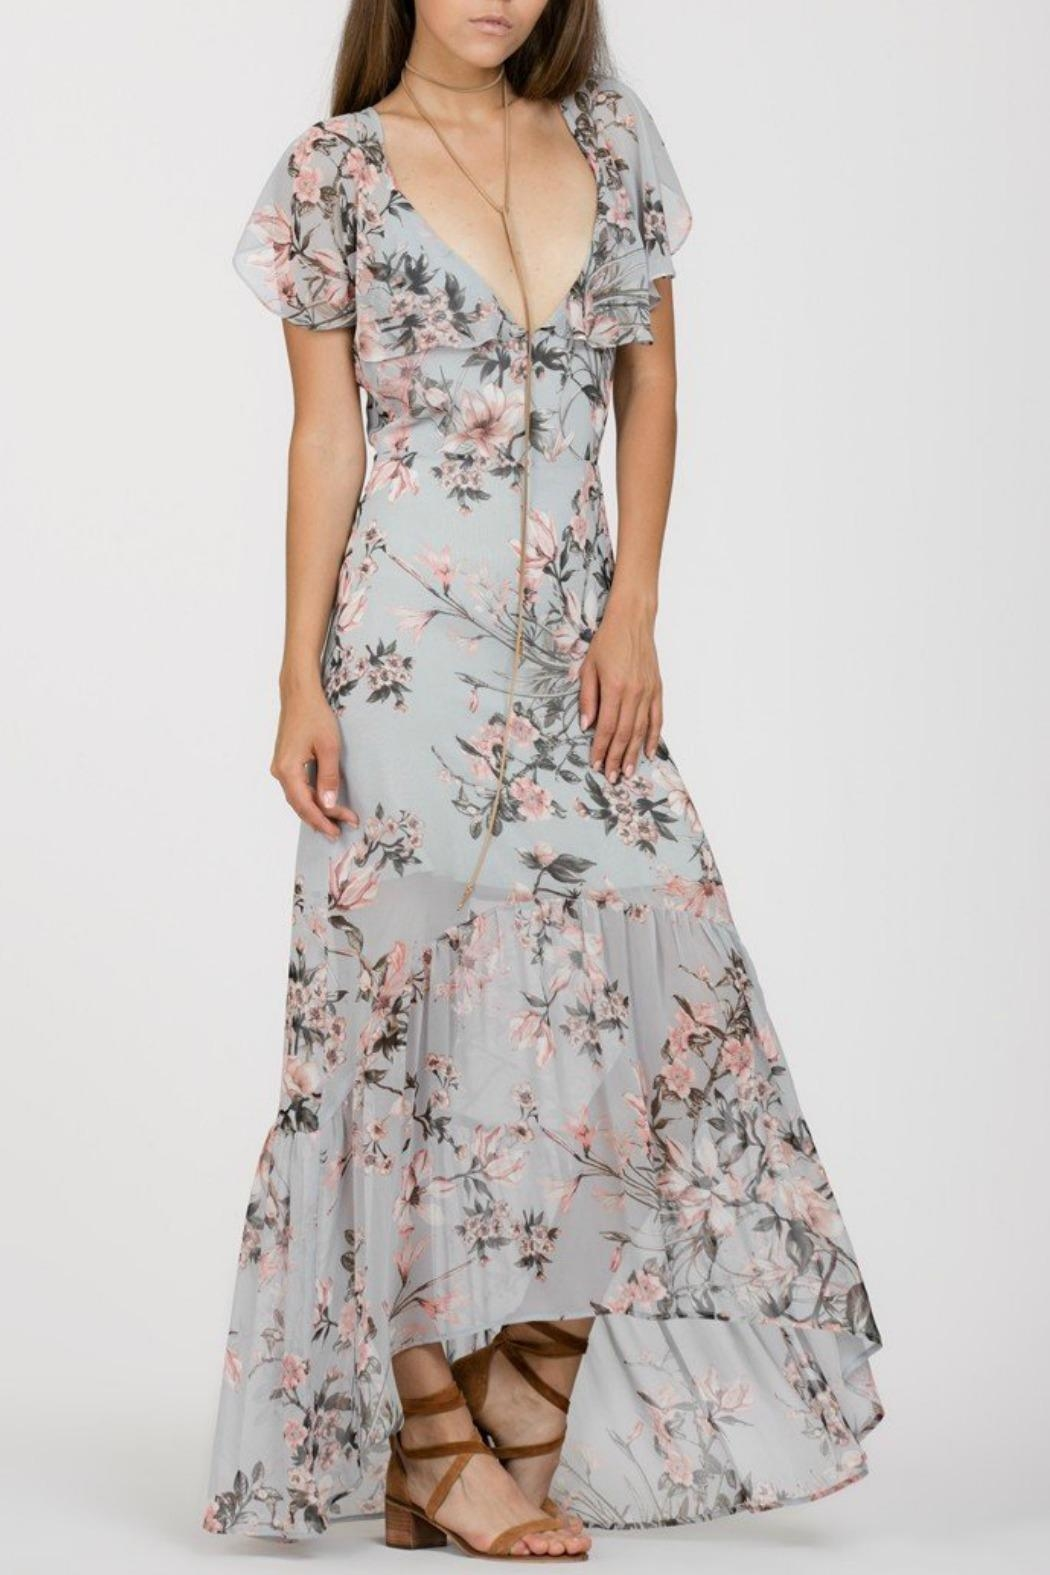 Ark & Co. Floral Maxi Dress - Main Image